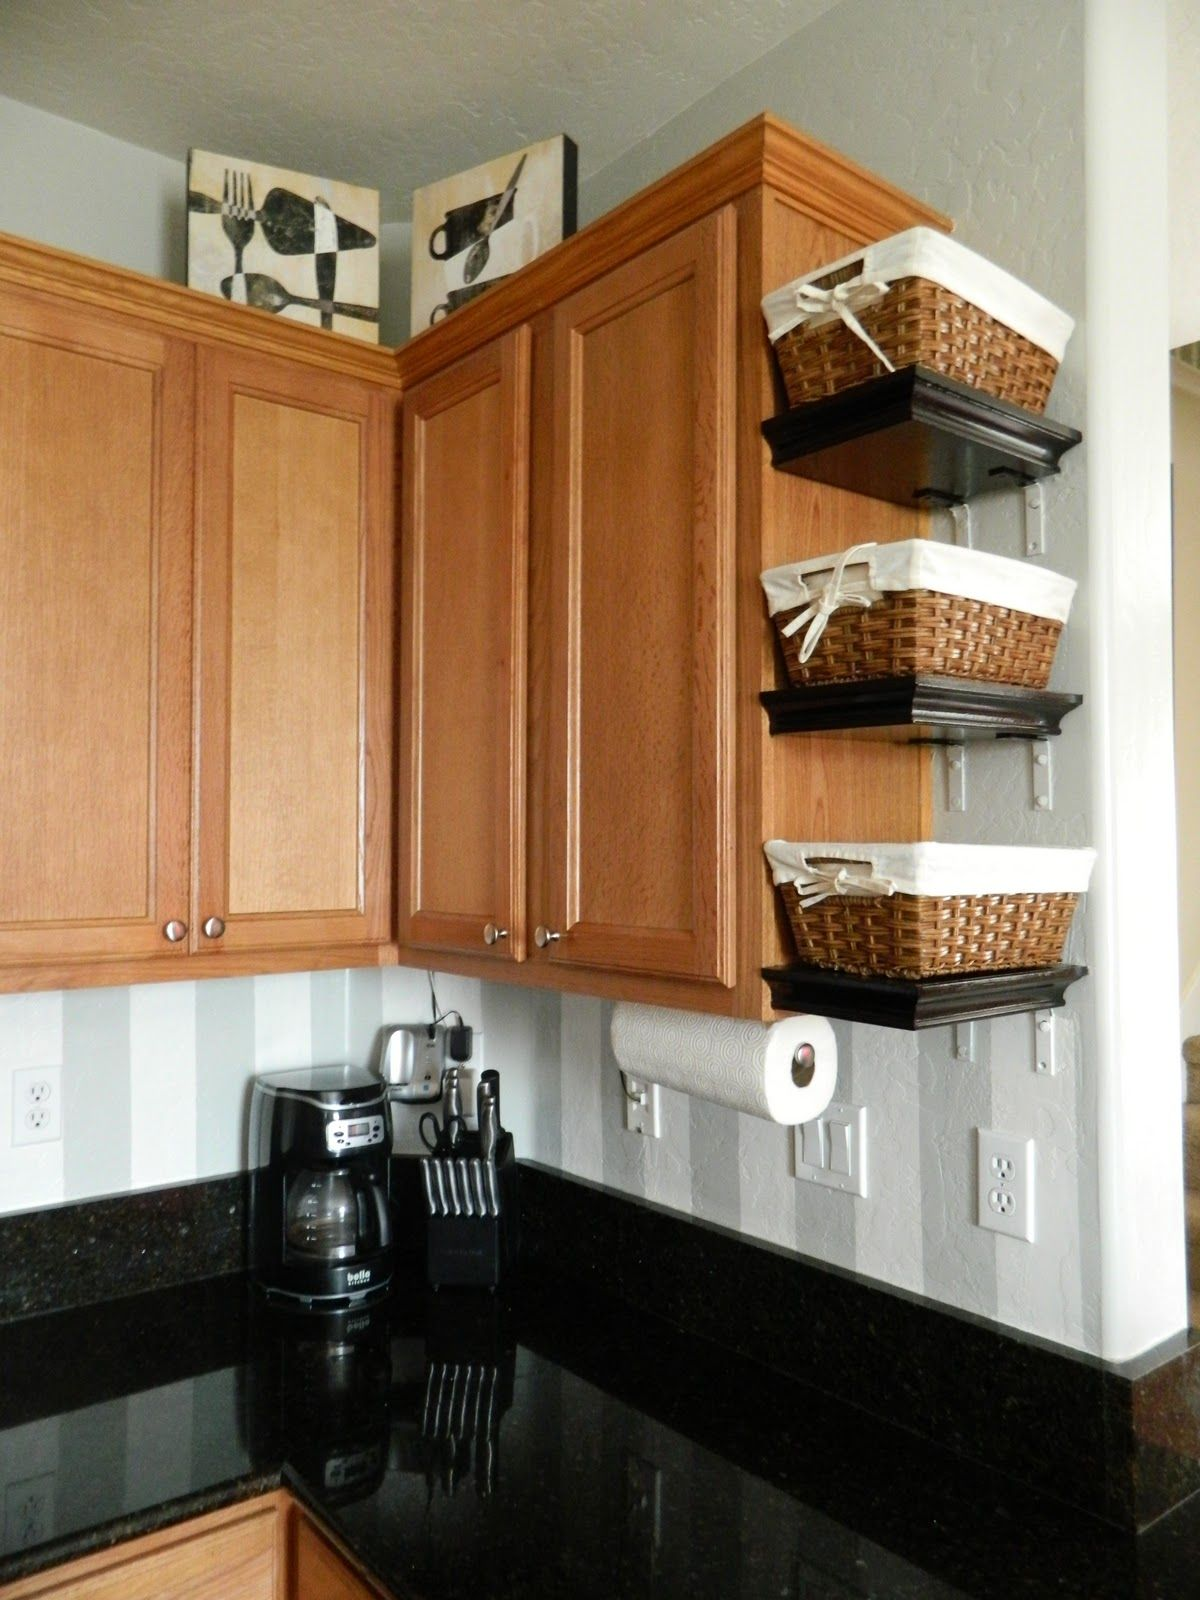 How To Use The Empty Space On The Side Of Kitchen Cabinets Top Dreamer Clutter Free Kitchen Diy Kitchen Storage Kitchen Remodel